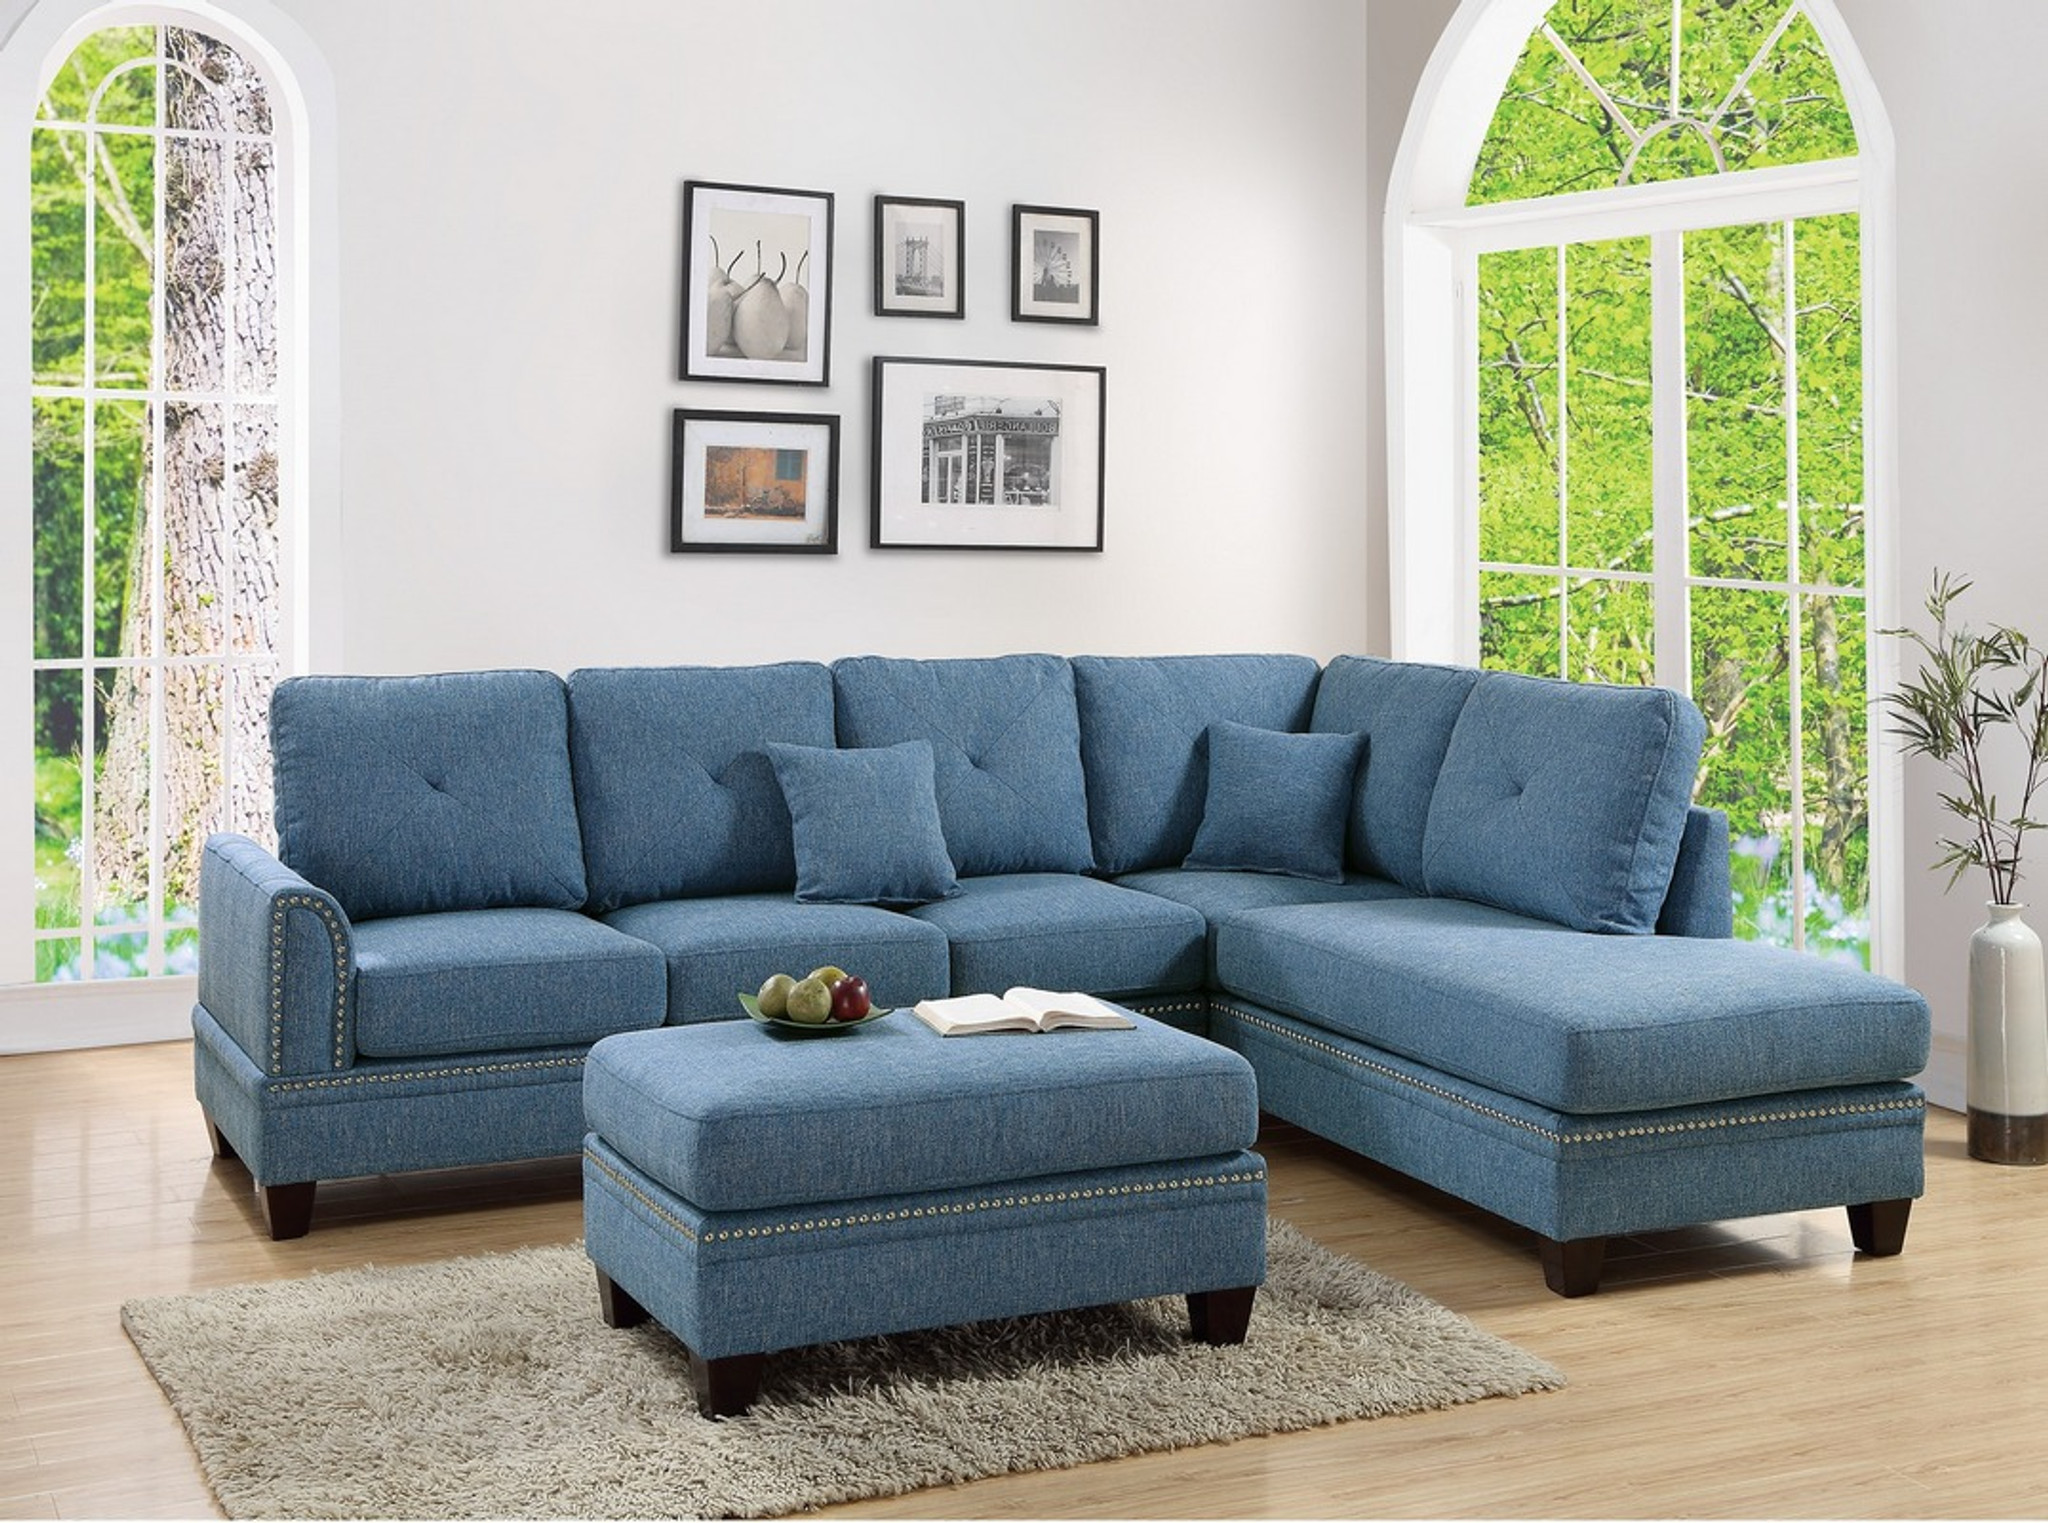 F6512-2PCS BLUE SECTIONAL SOFA By Poundex